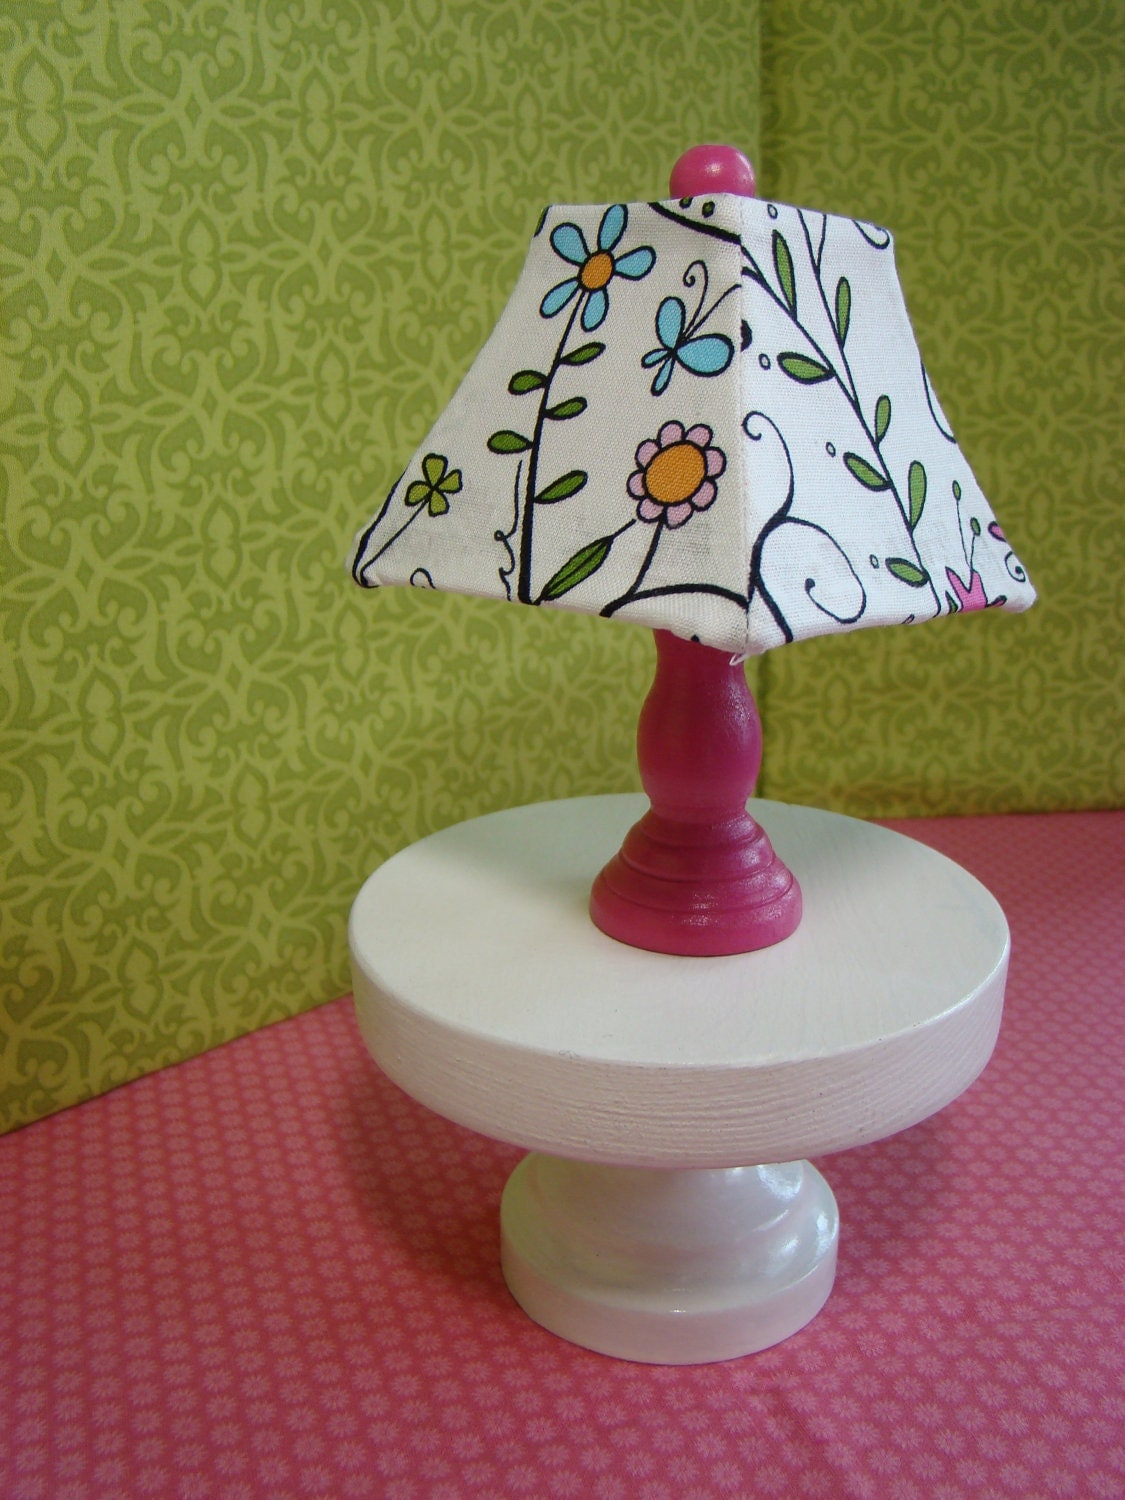 Barbie Furniture Pink Table Lamp W Square Bell Lampshade